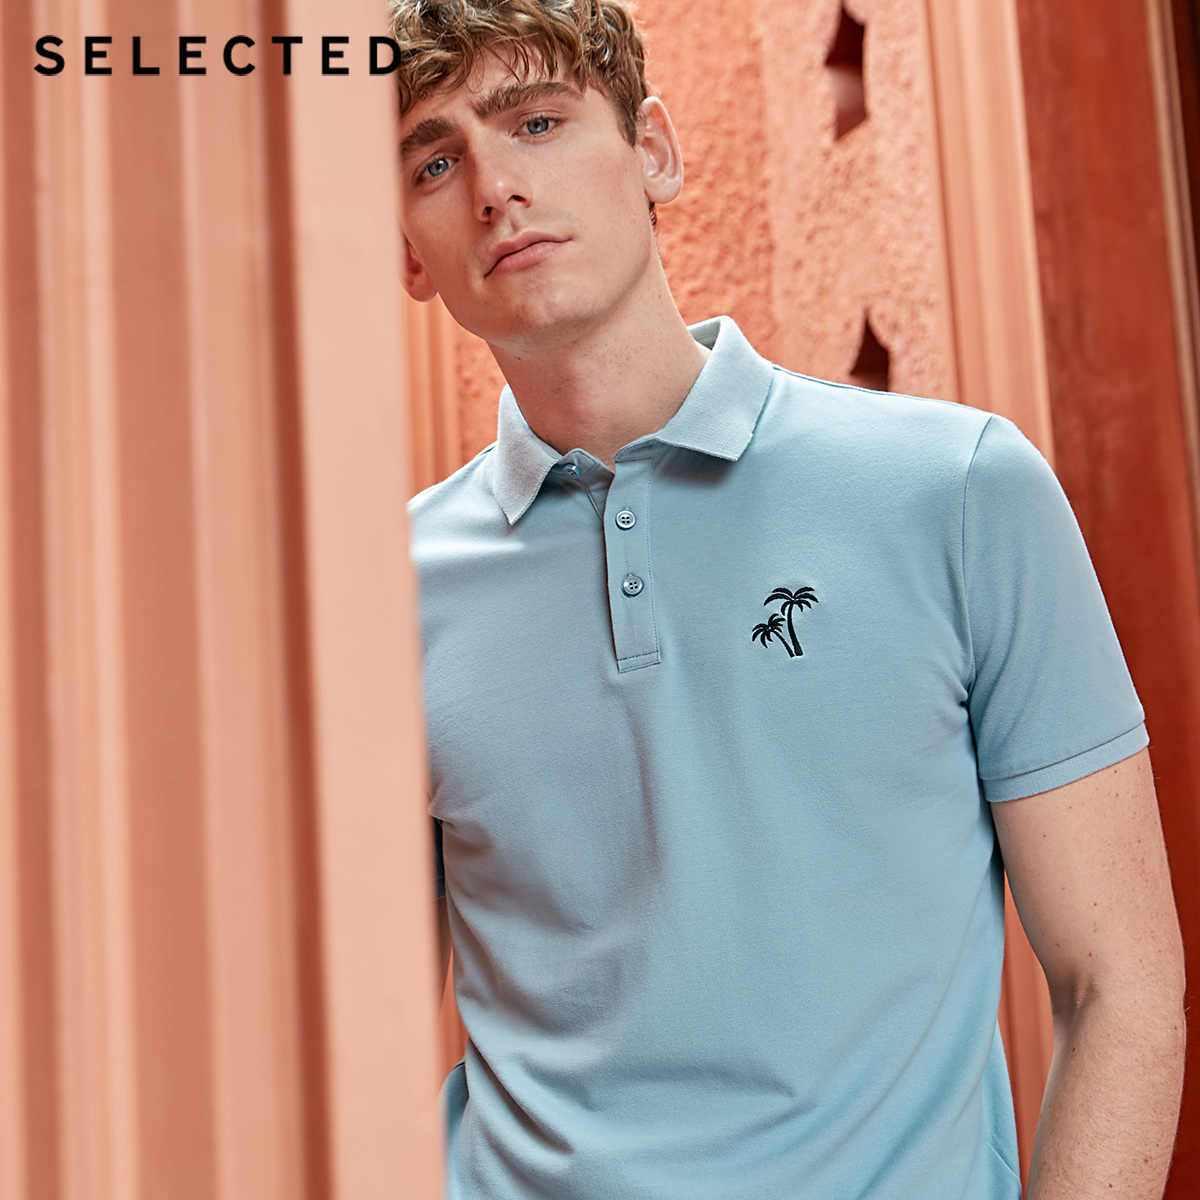 SELECTED Men's Pure Color Turn-down Collar Short-sleeved Polo S|419206535